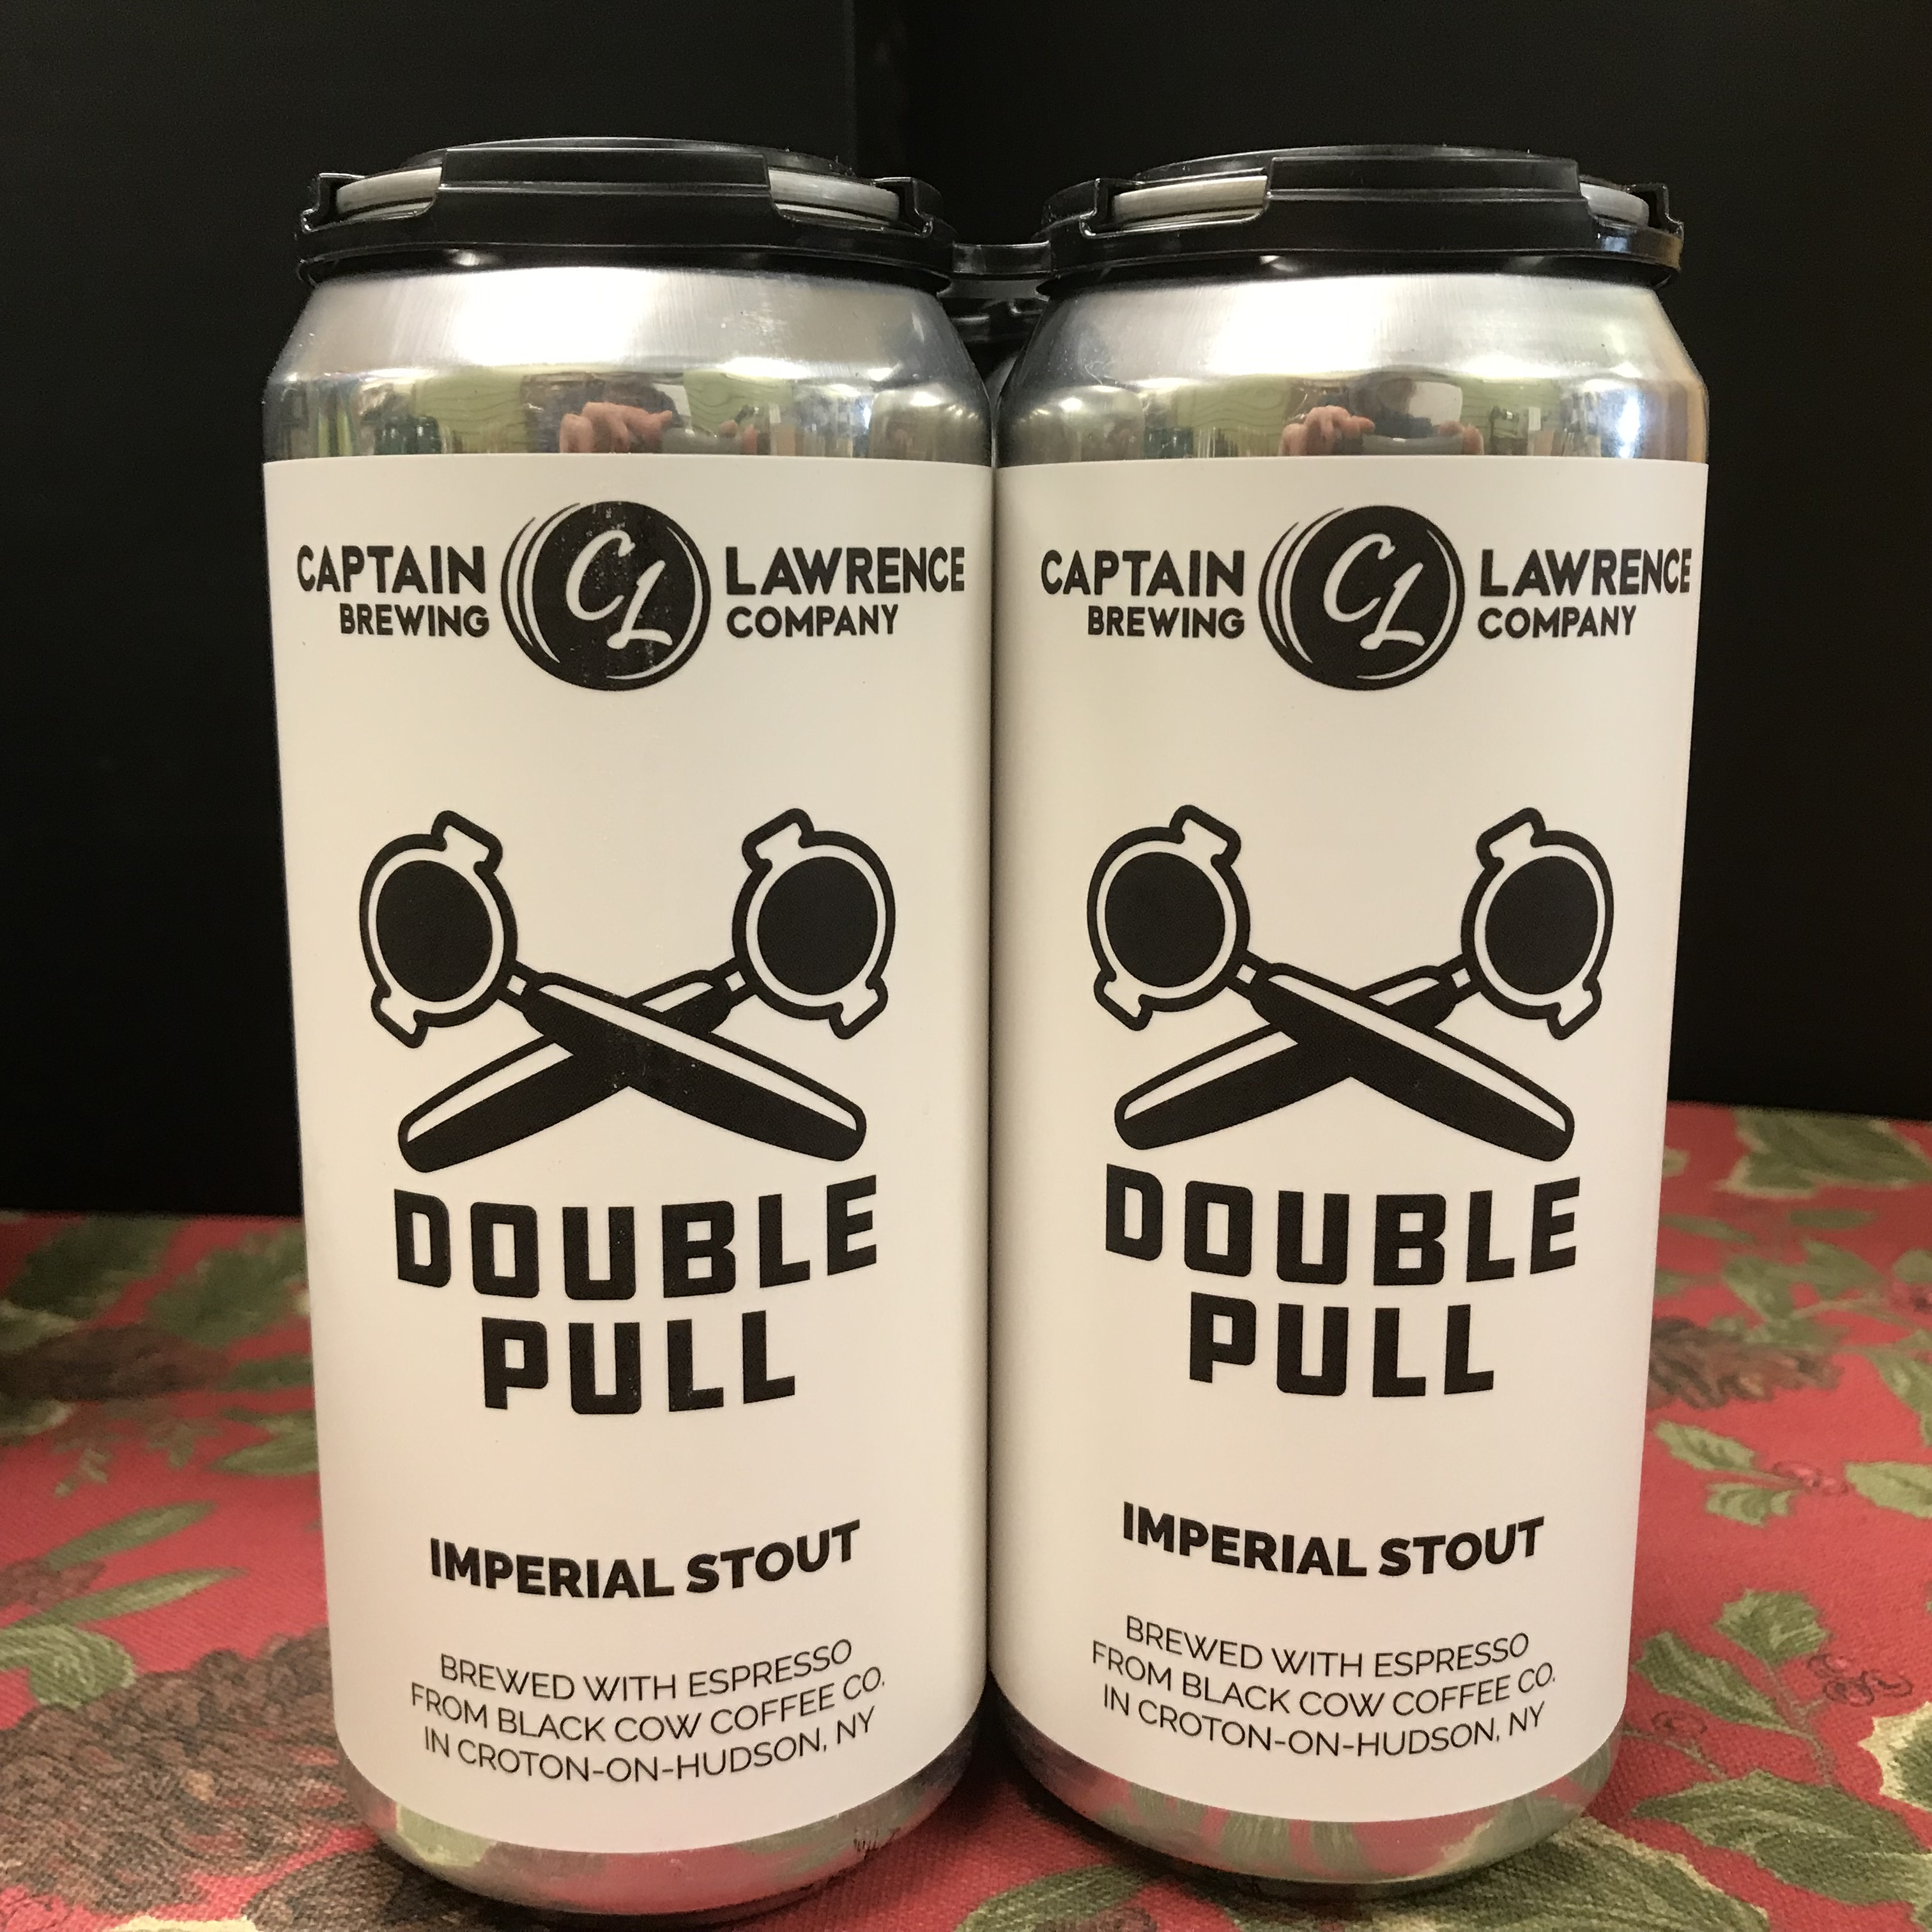 Captain Lawrence Double Pull Imperial Stout 4 x 1 pint